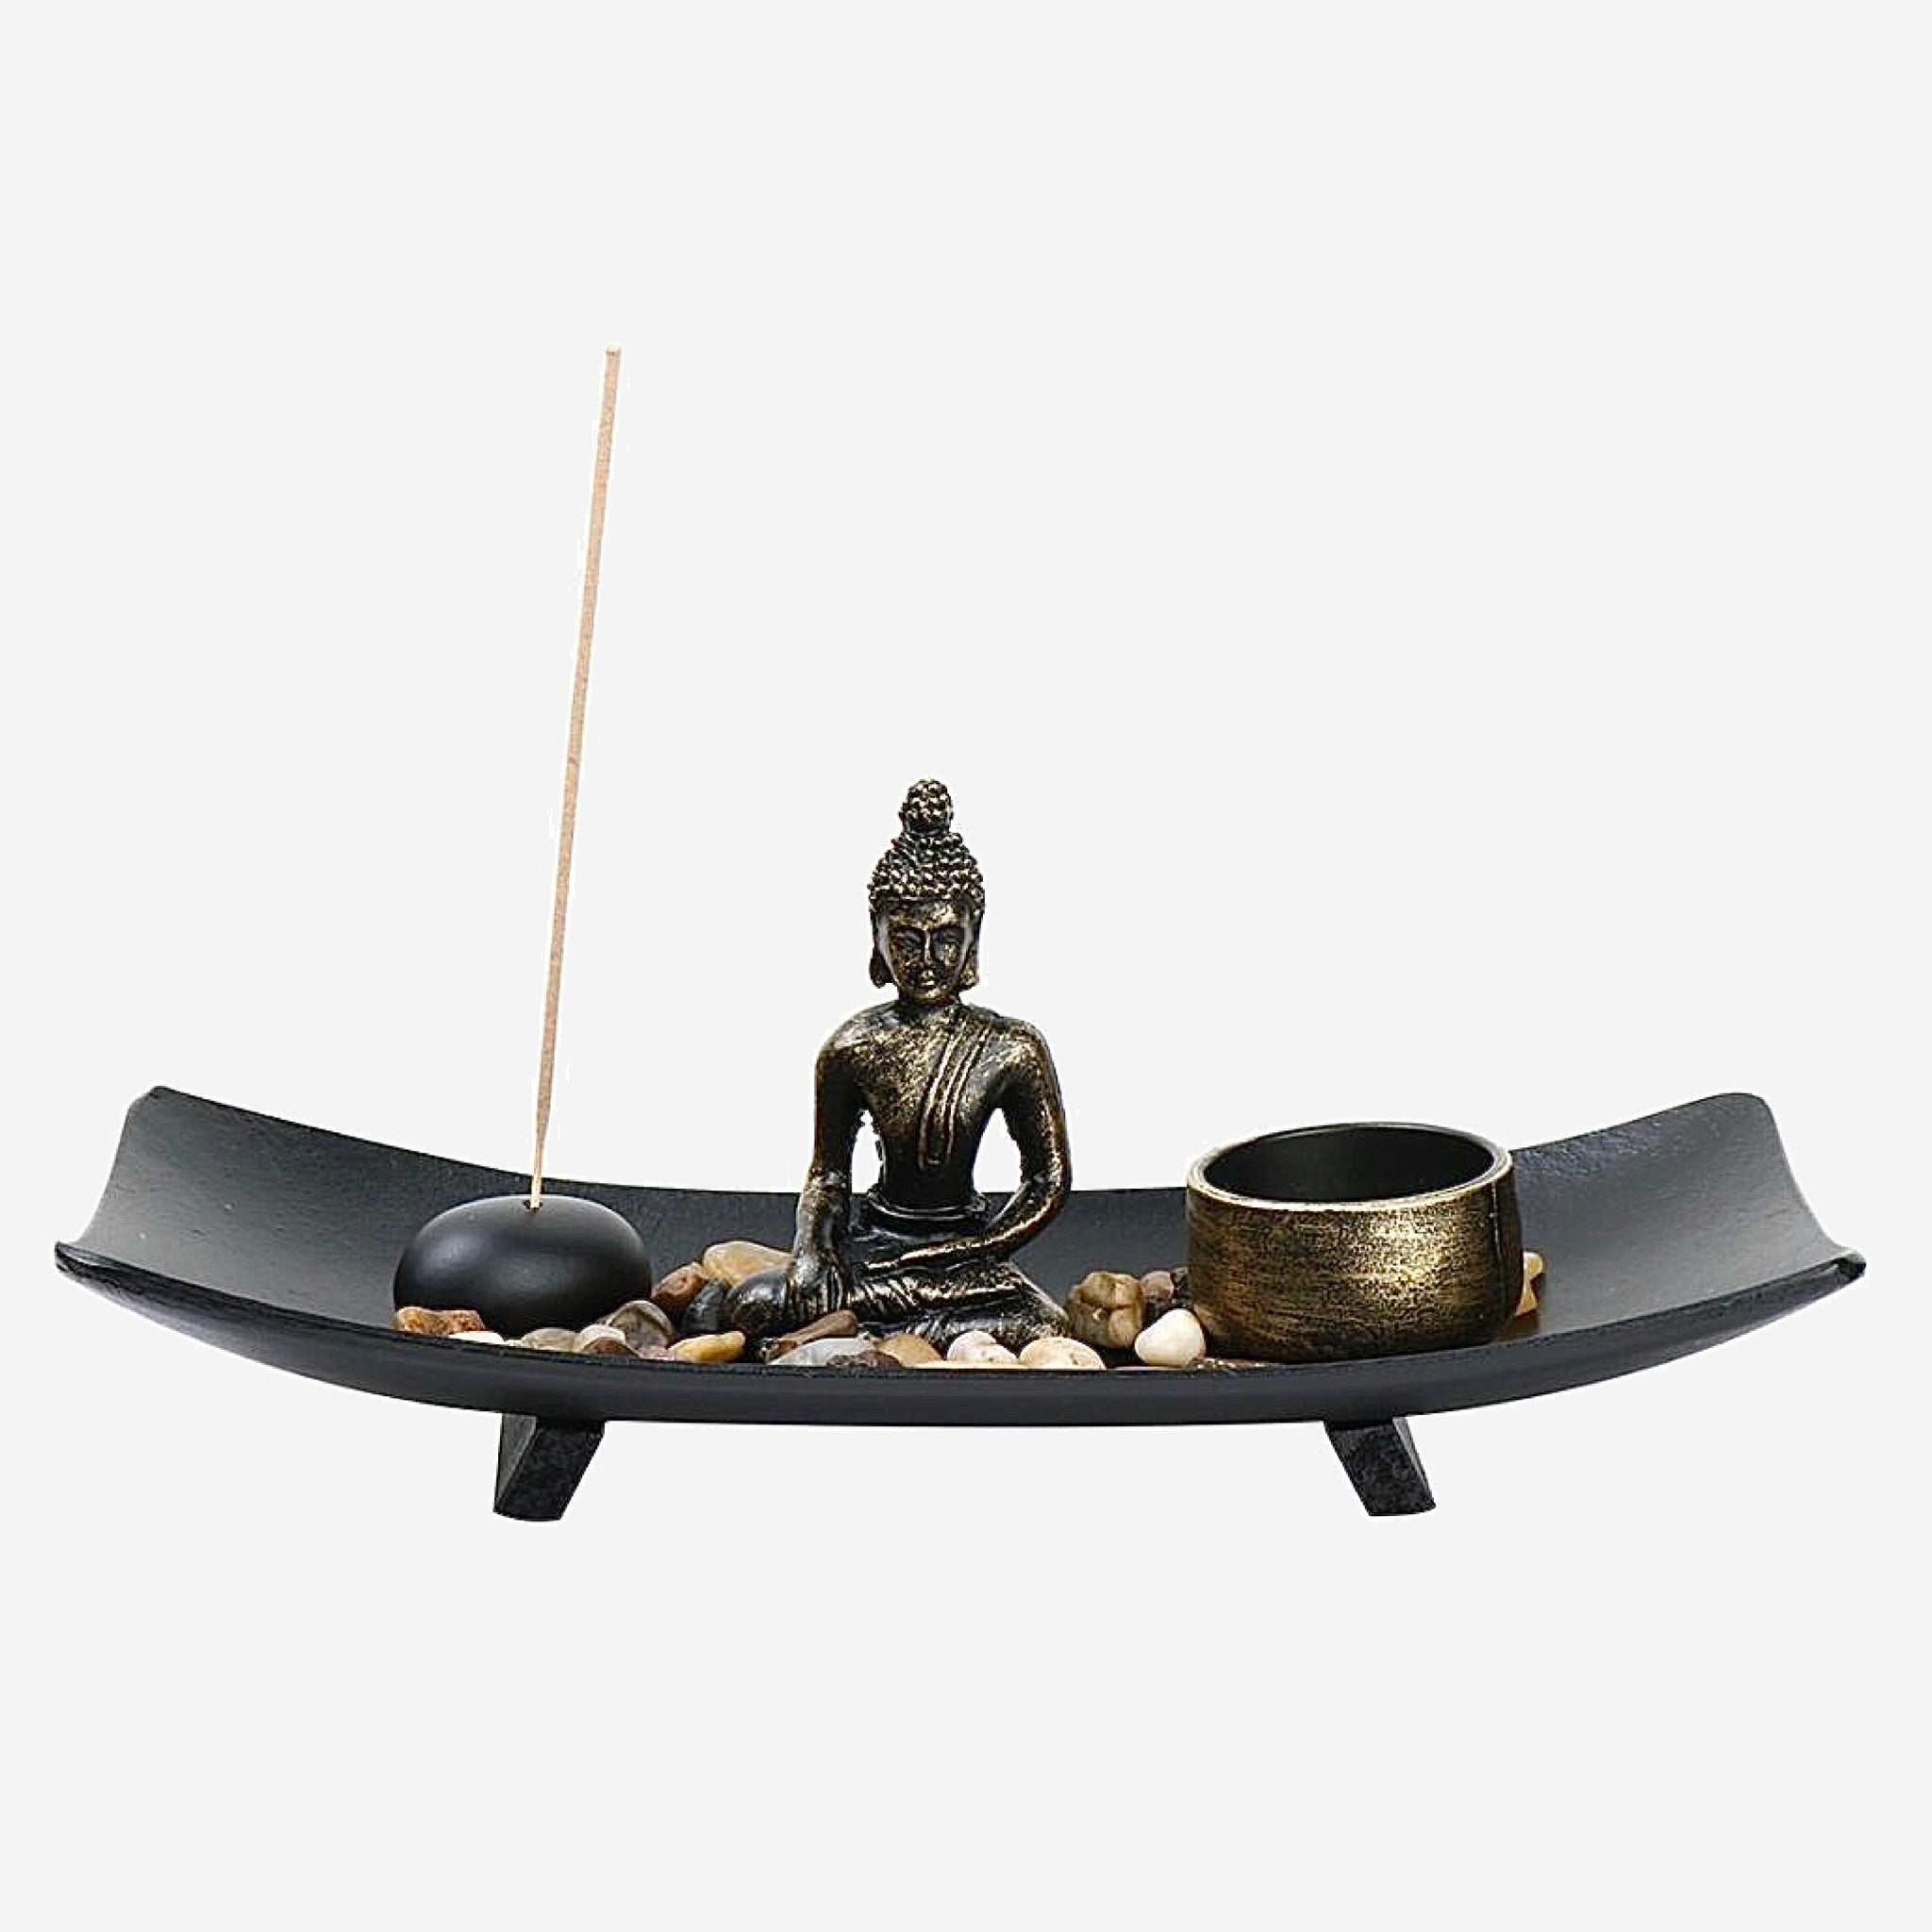 Buddha Zen Garden Vintage Incense Burner Meditation Relax Incense Stick Holder For Home Decor Gift Tabletop Figurines Miniatures Trend